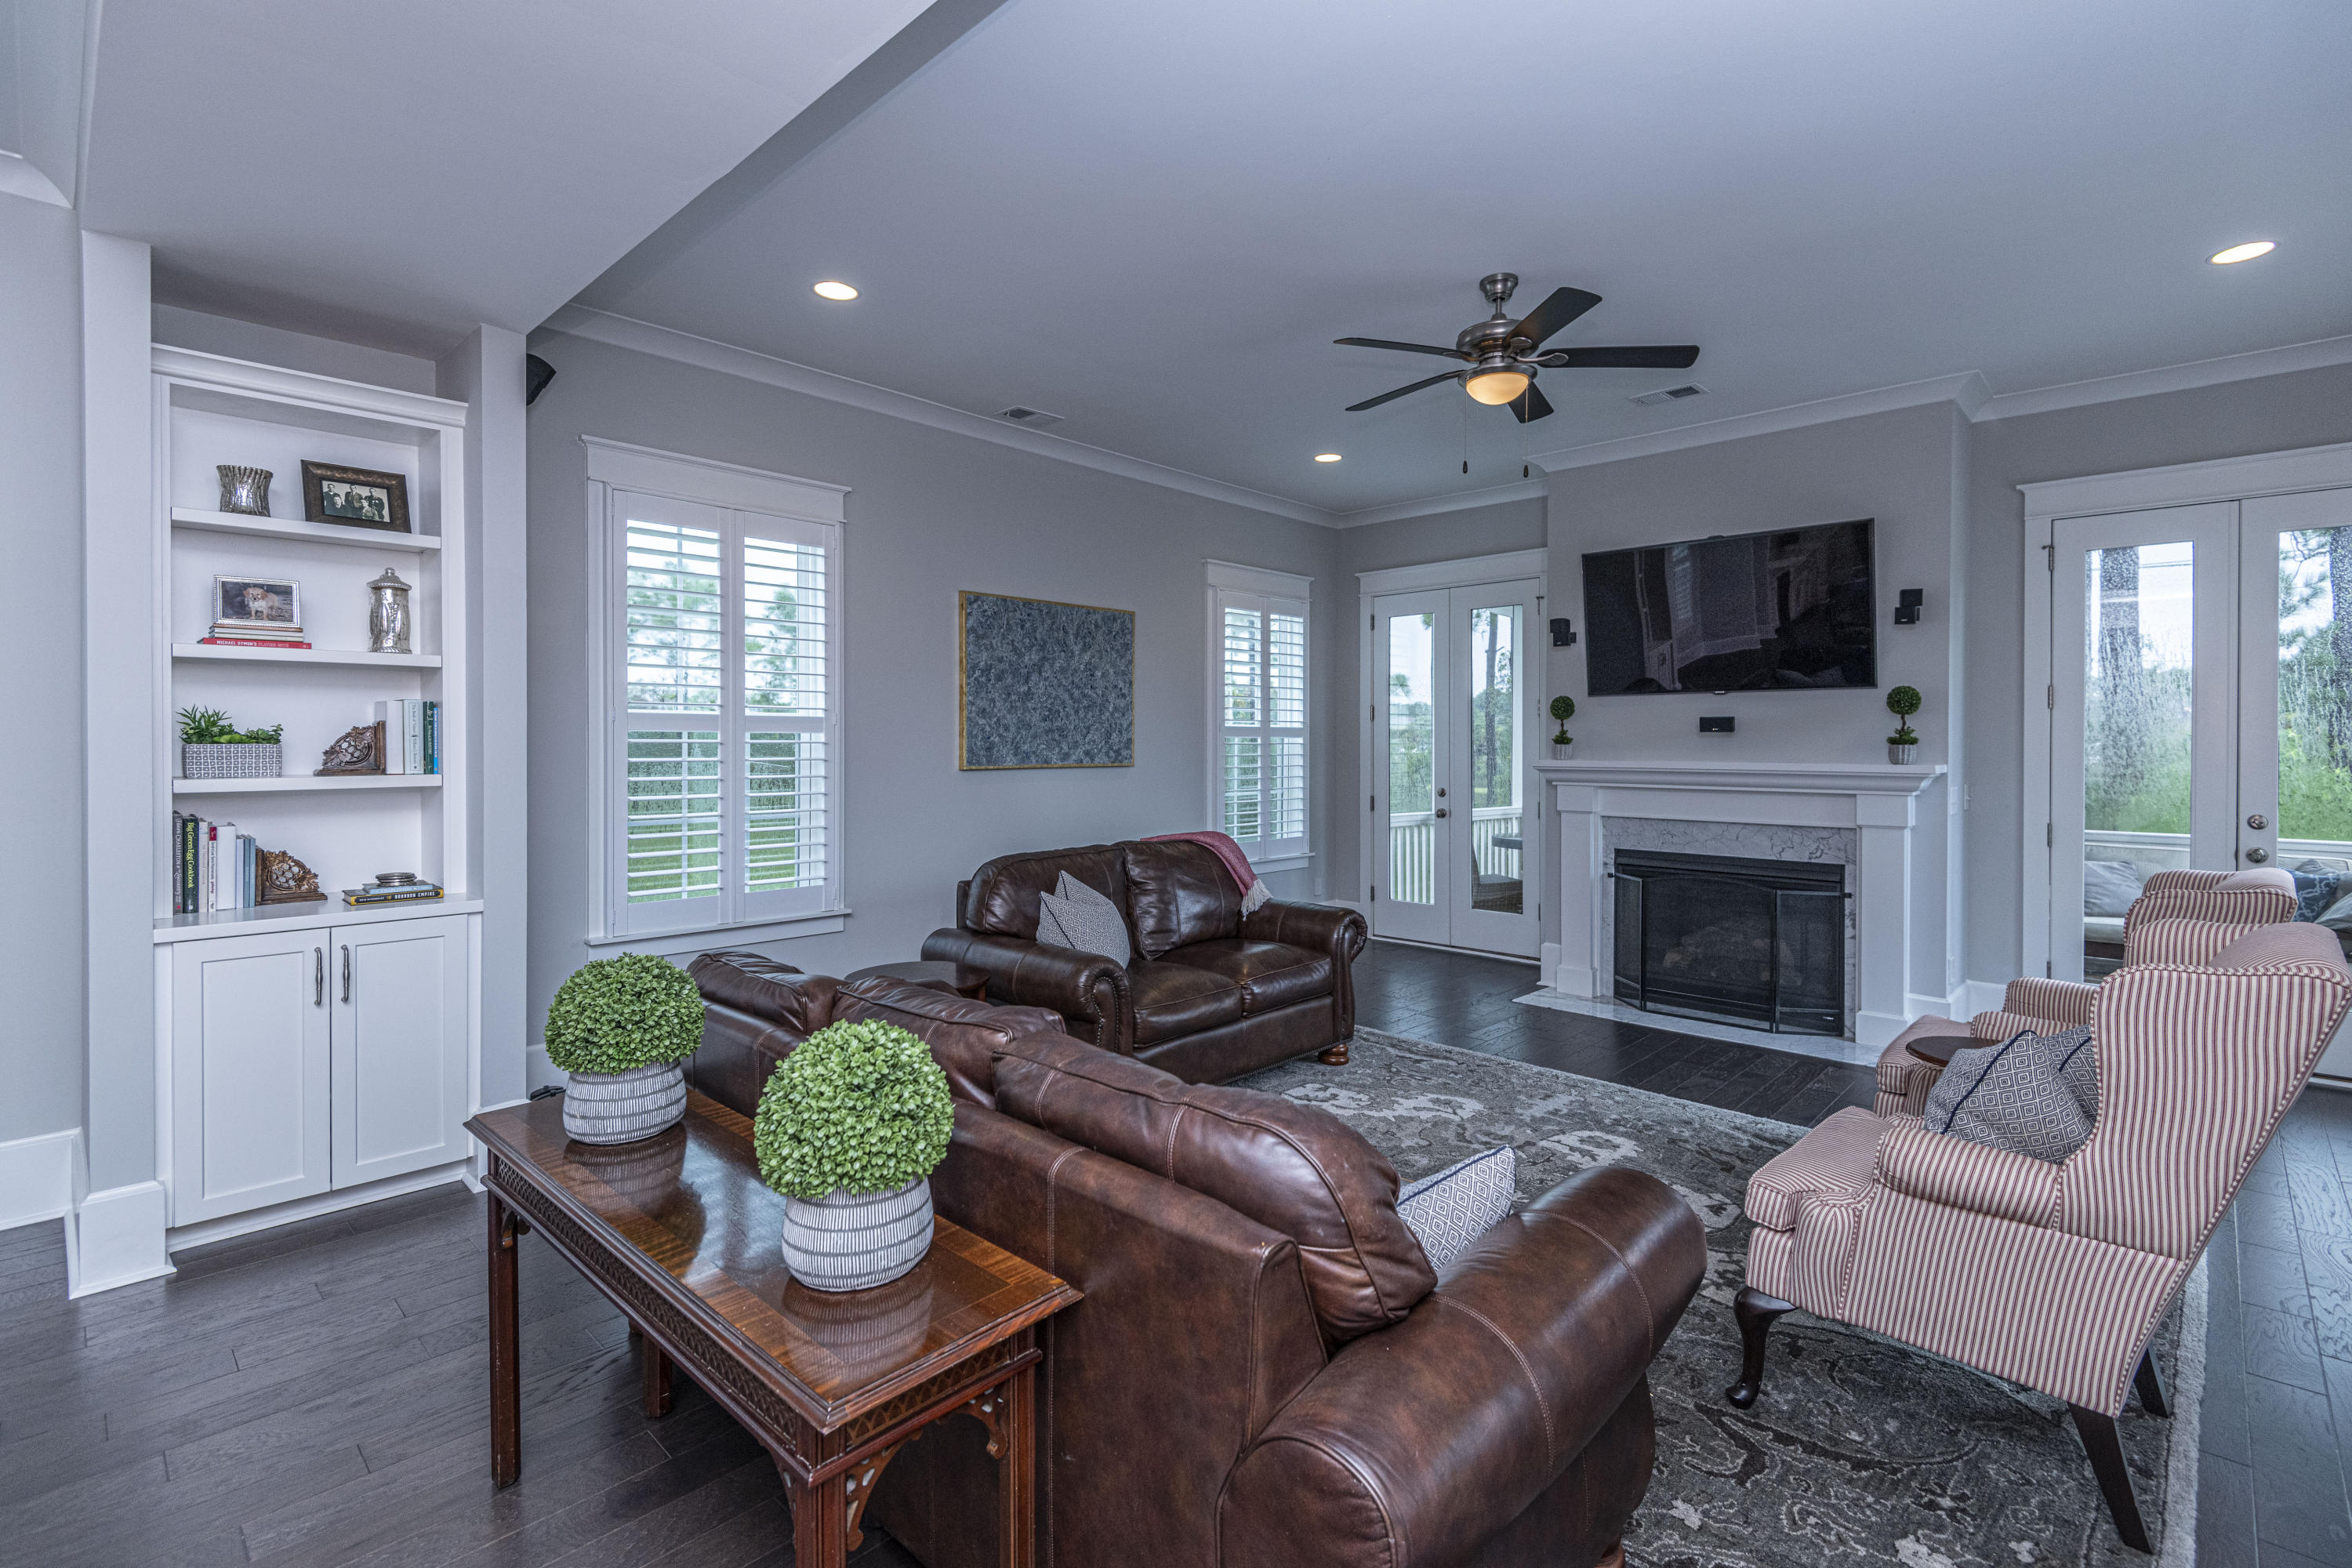 Stratton by the Sound Homes For Sale - 1204 Spottail, Mount Pleasant, SC - 32